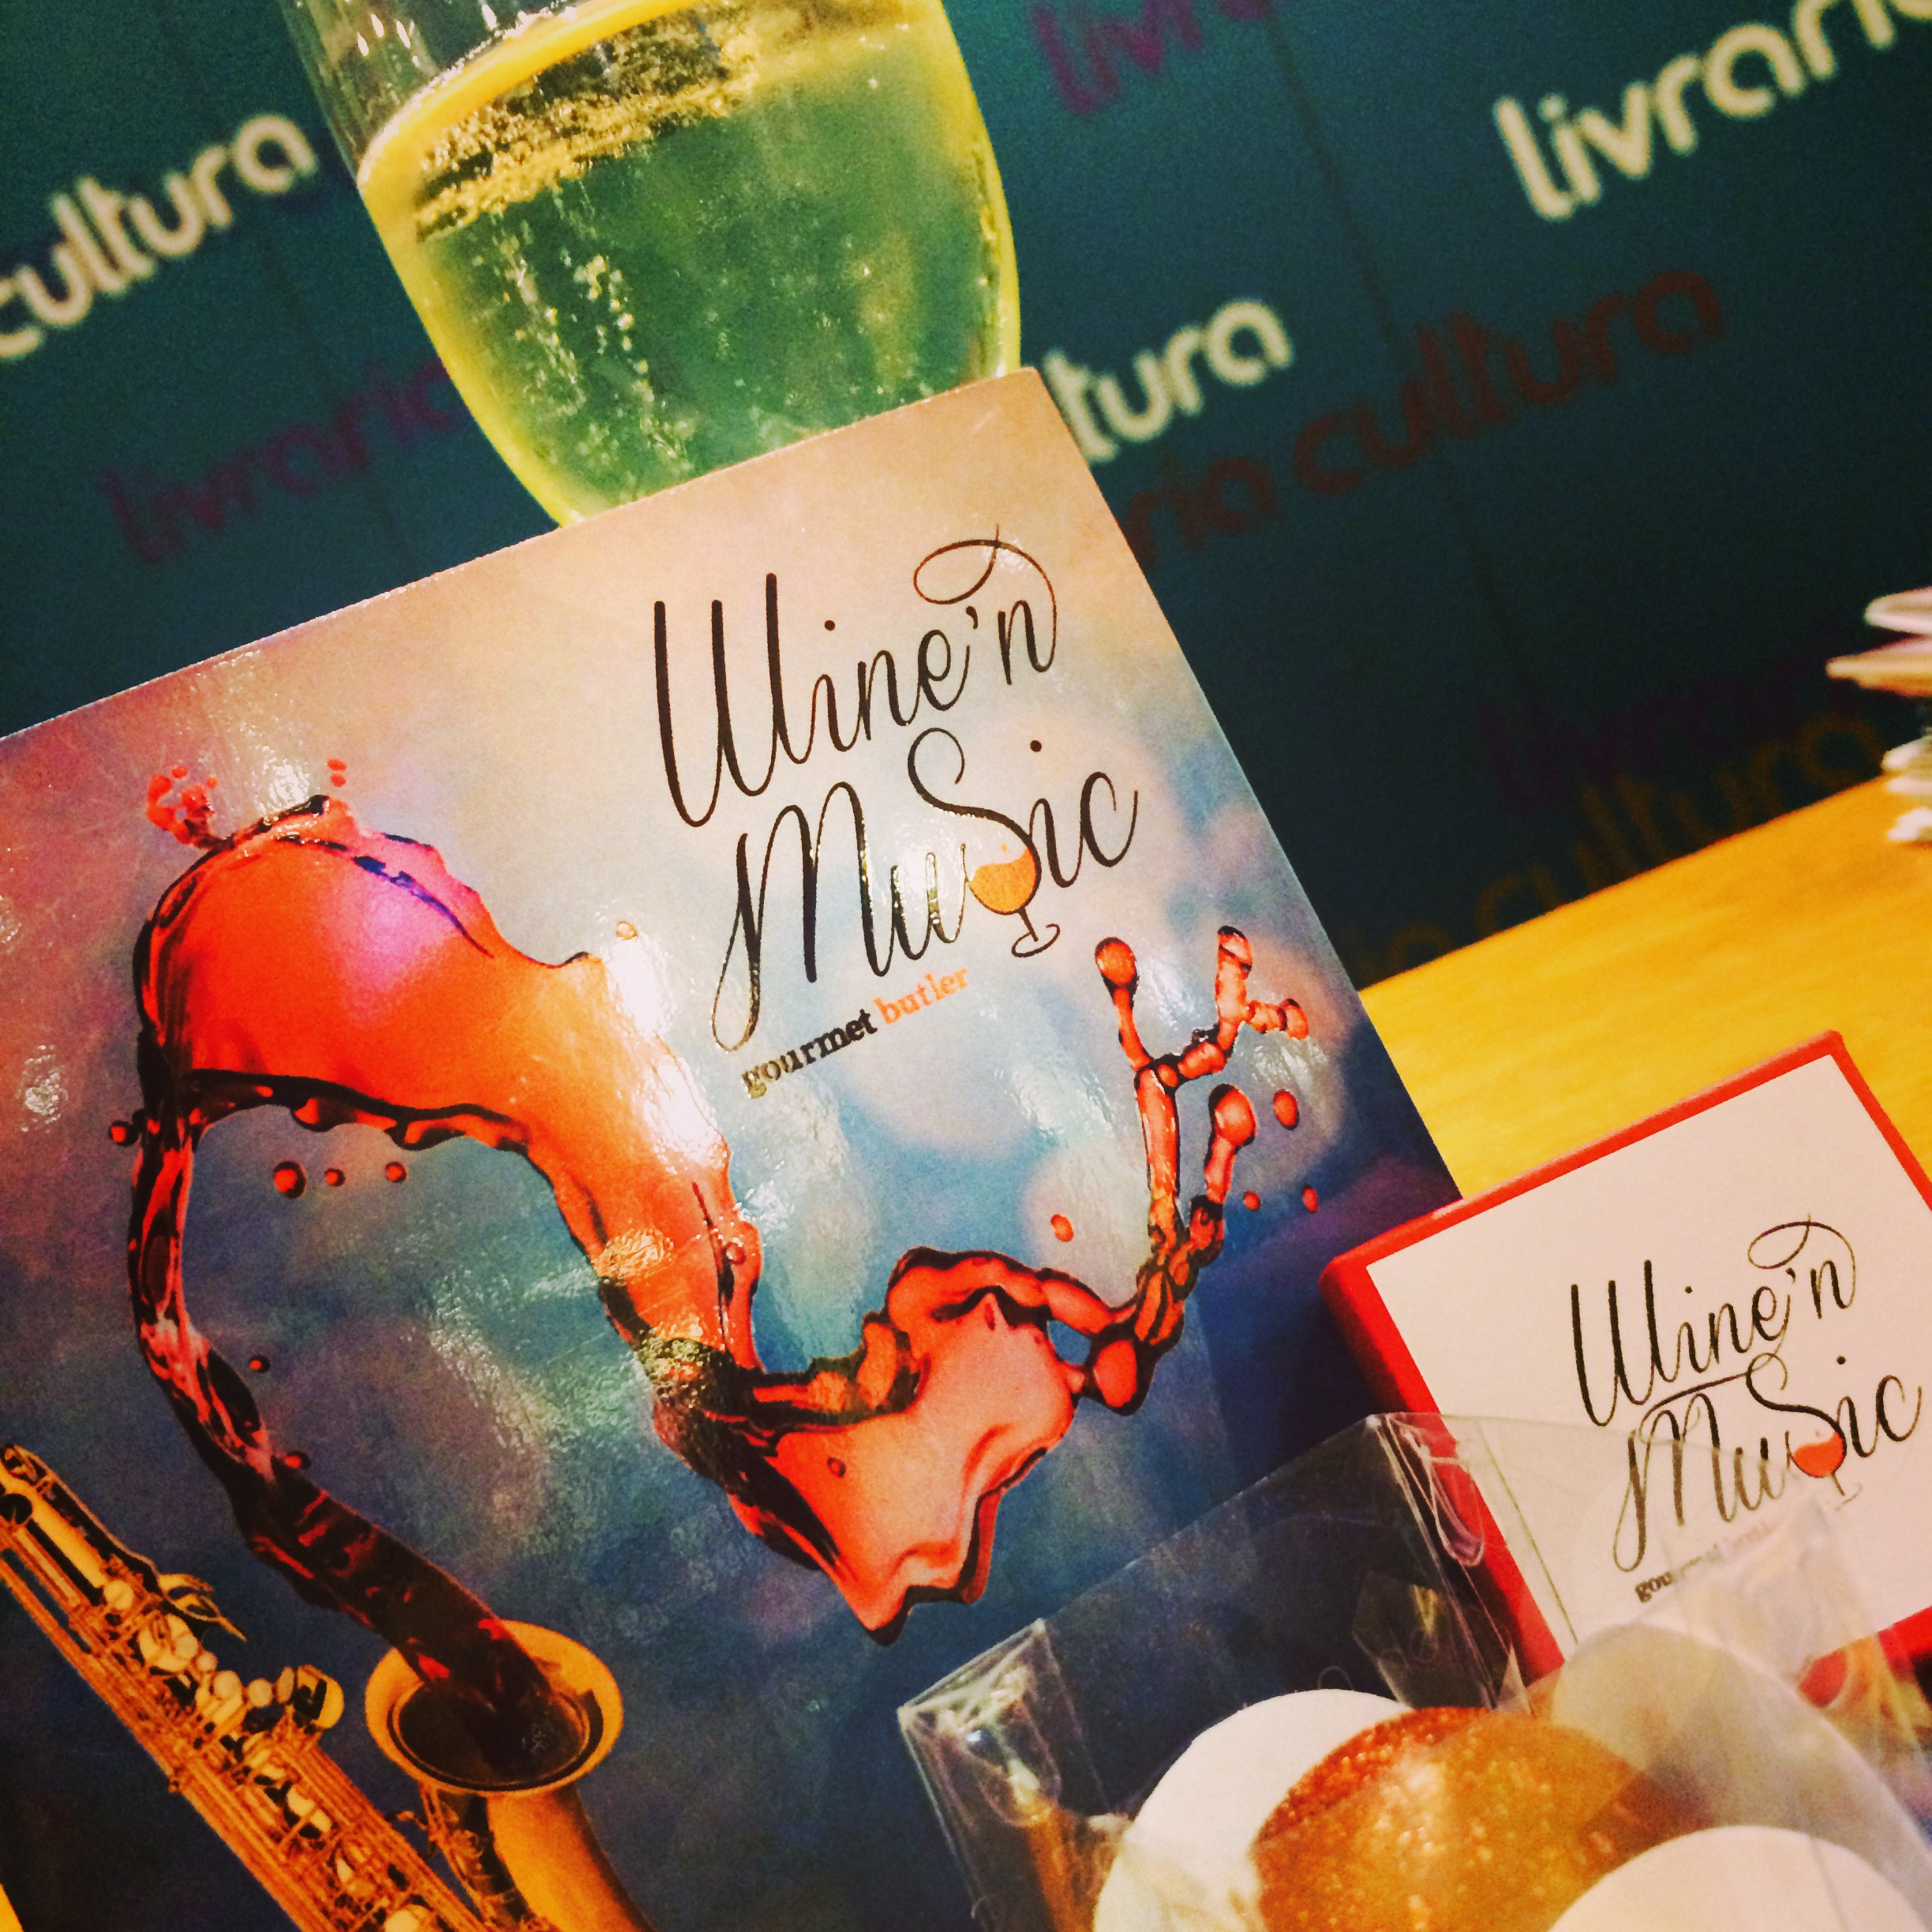 Wine in Music 2014